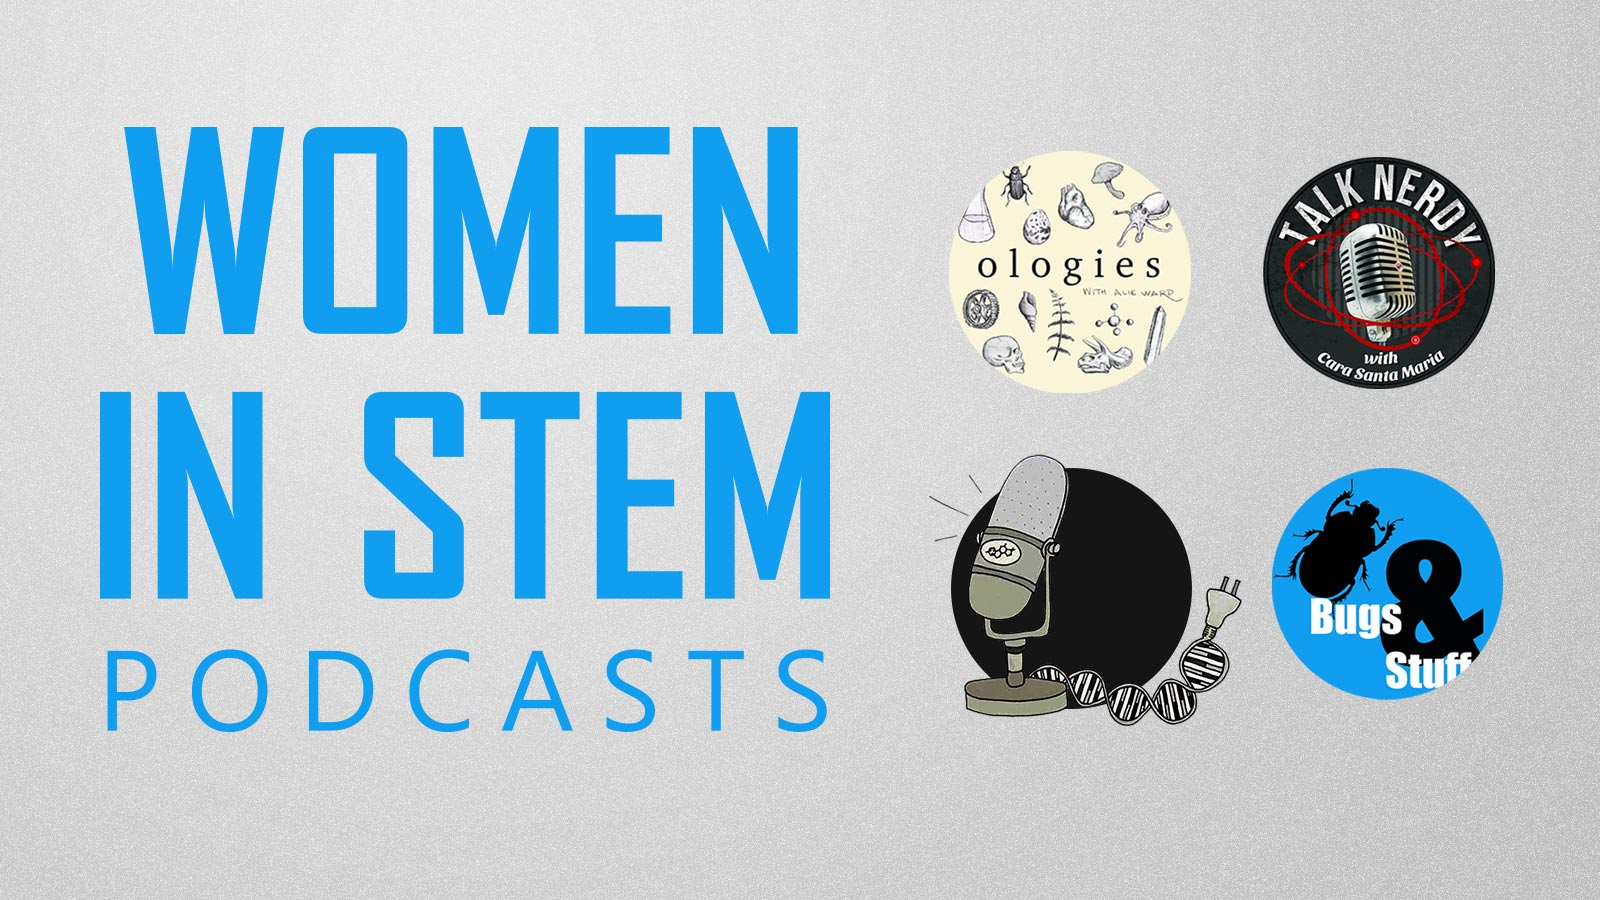 Women in STEM Podcasts